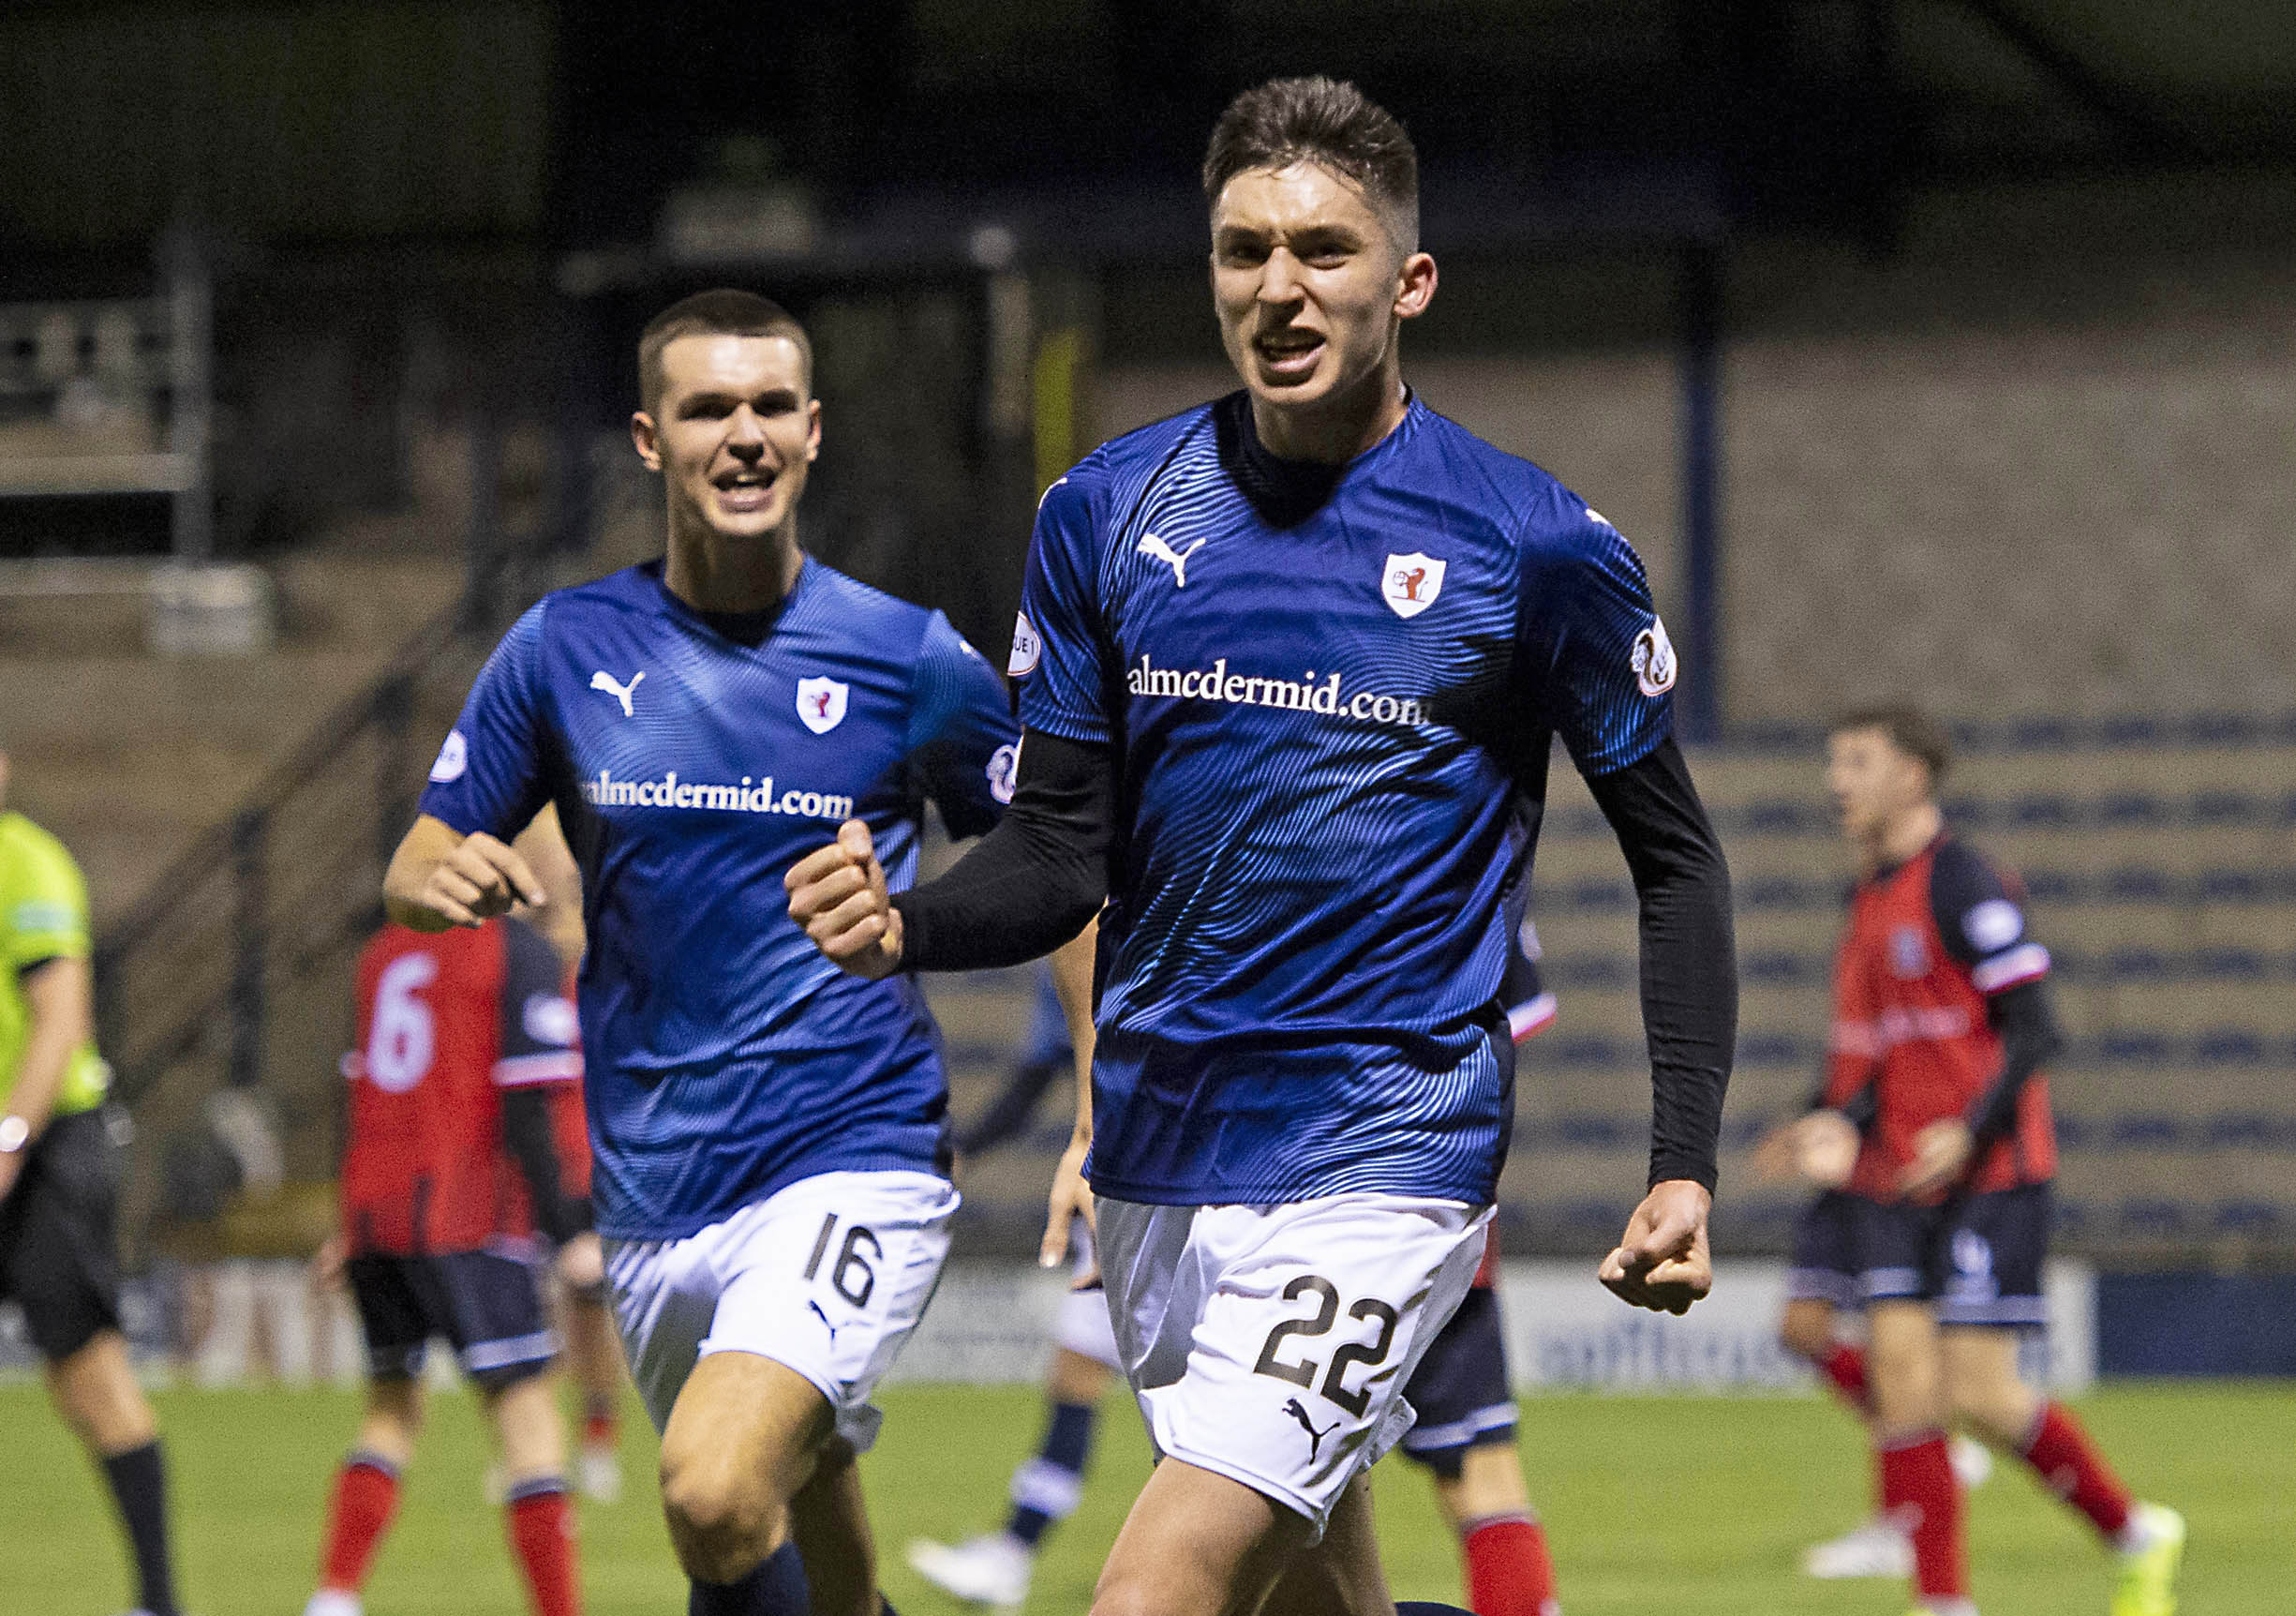 Kieron Bowie wheels away after putting Raith Rovers in the lead against Elgin in the Challenge Cup.